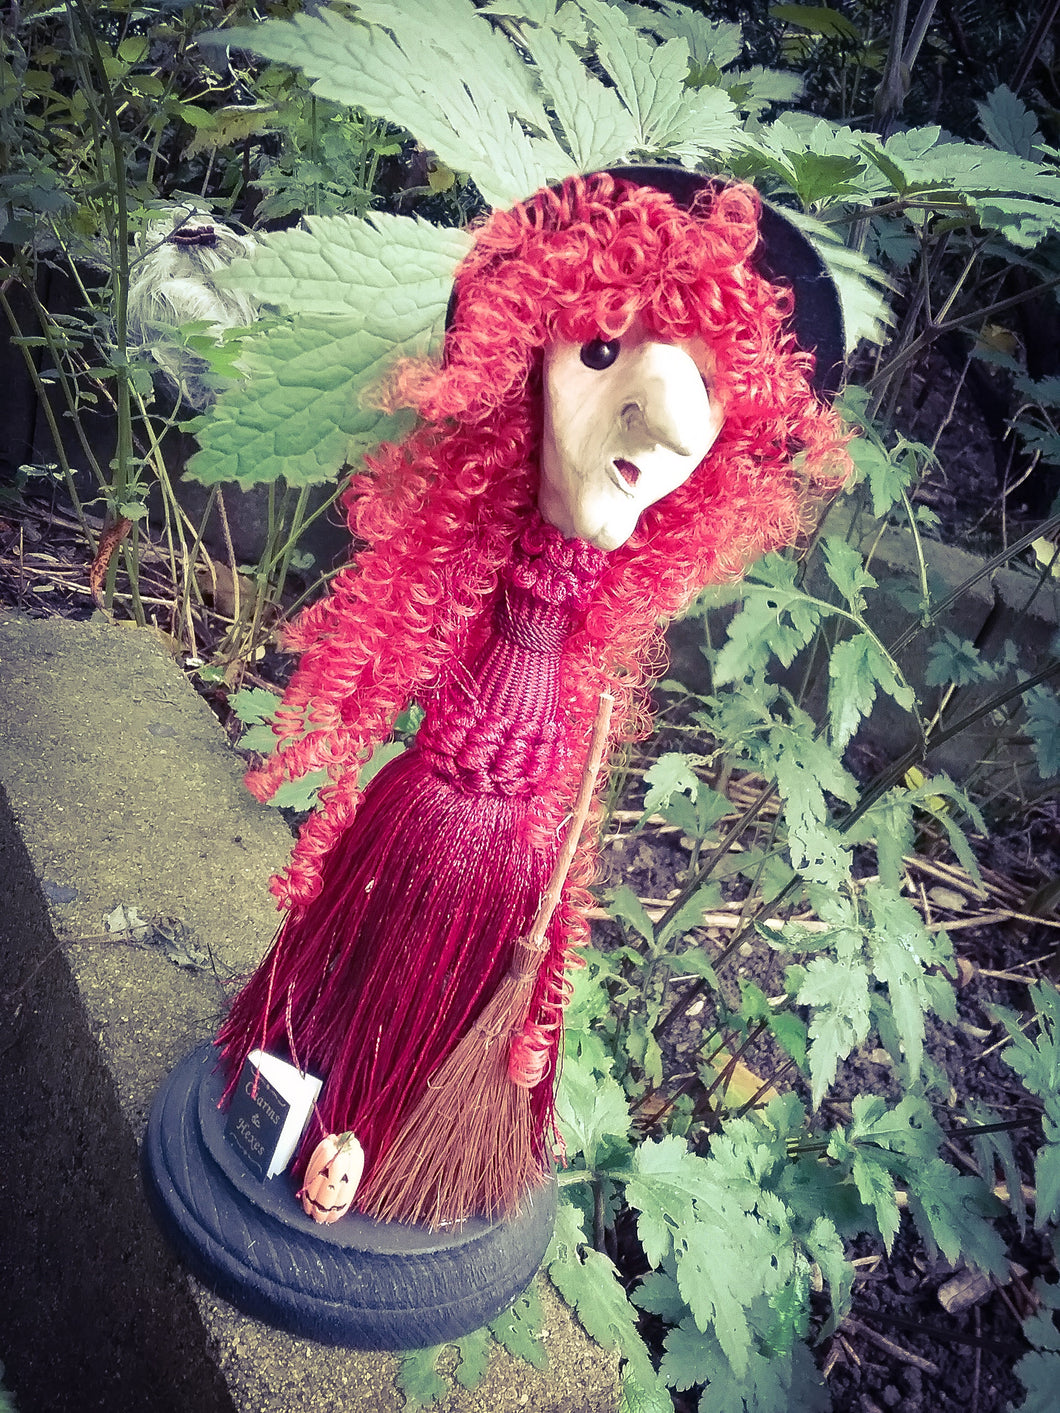 The Hedge Witch Spirit Poppet